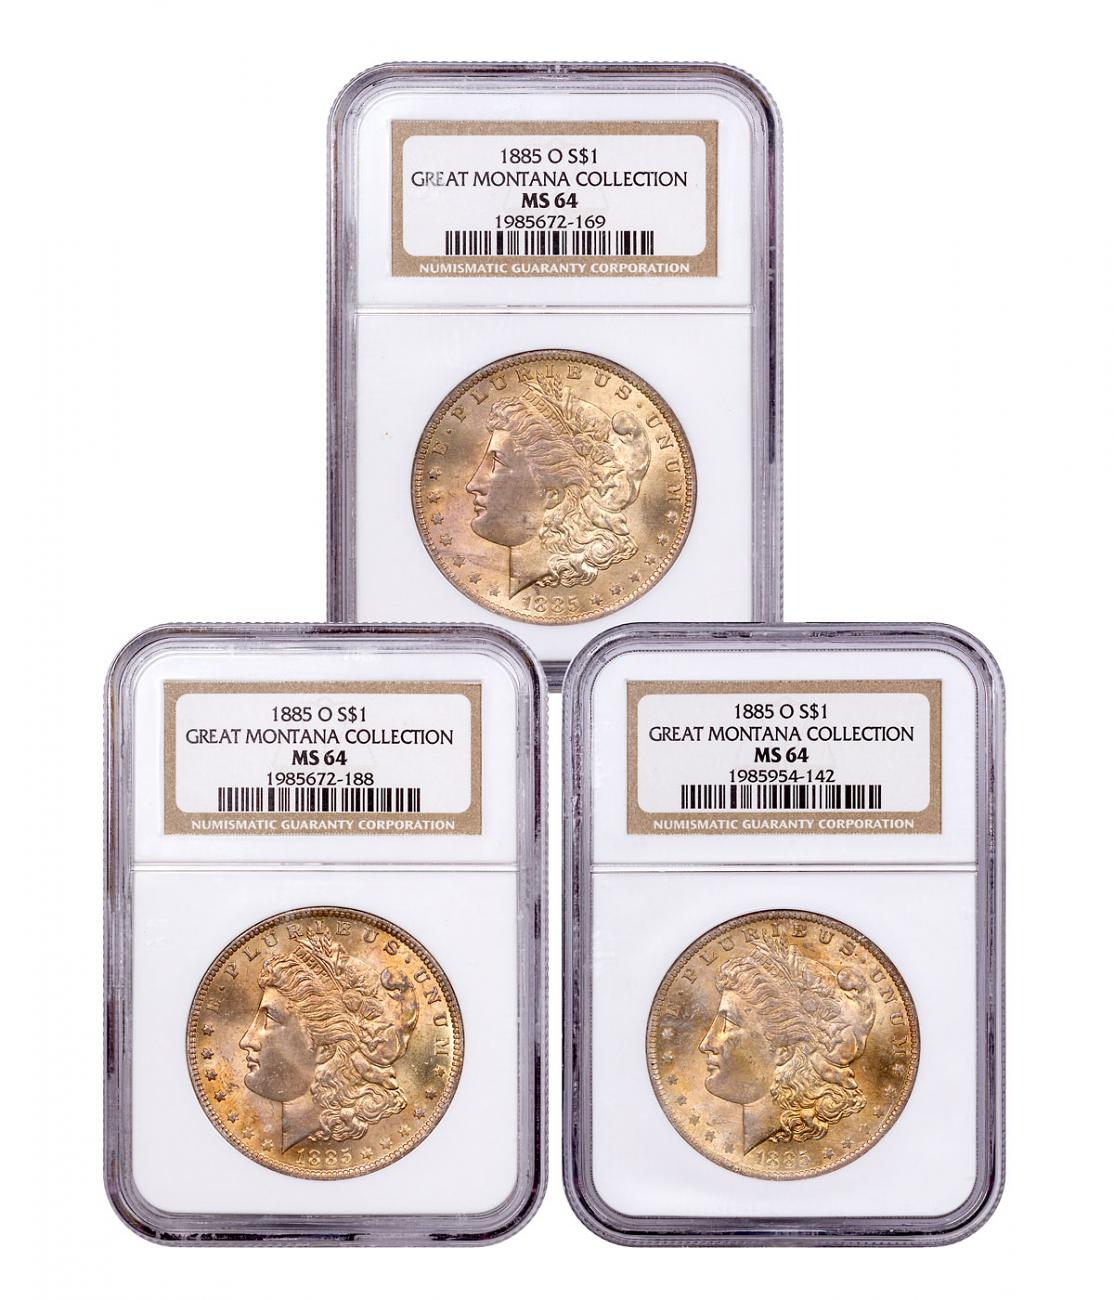 3-Coin Set - 1885-O Morgan Silver Dollar From the Great Montana Collection NGC MS64 Toned CPCR 2169